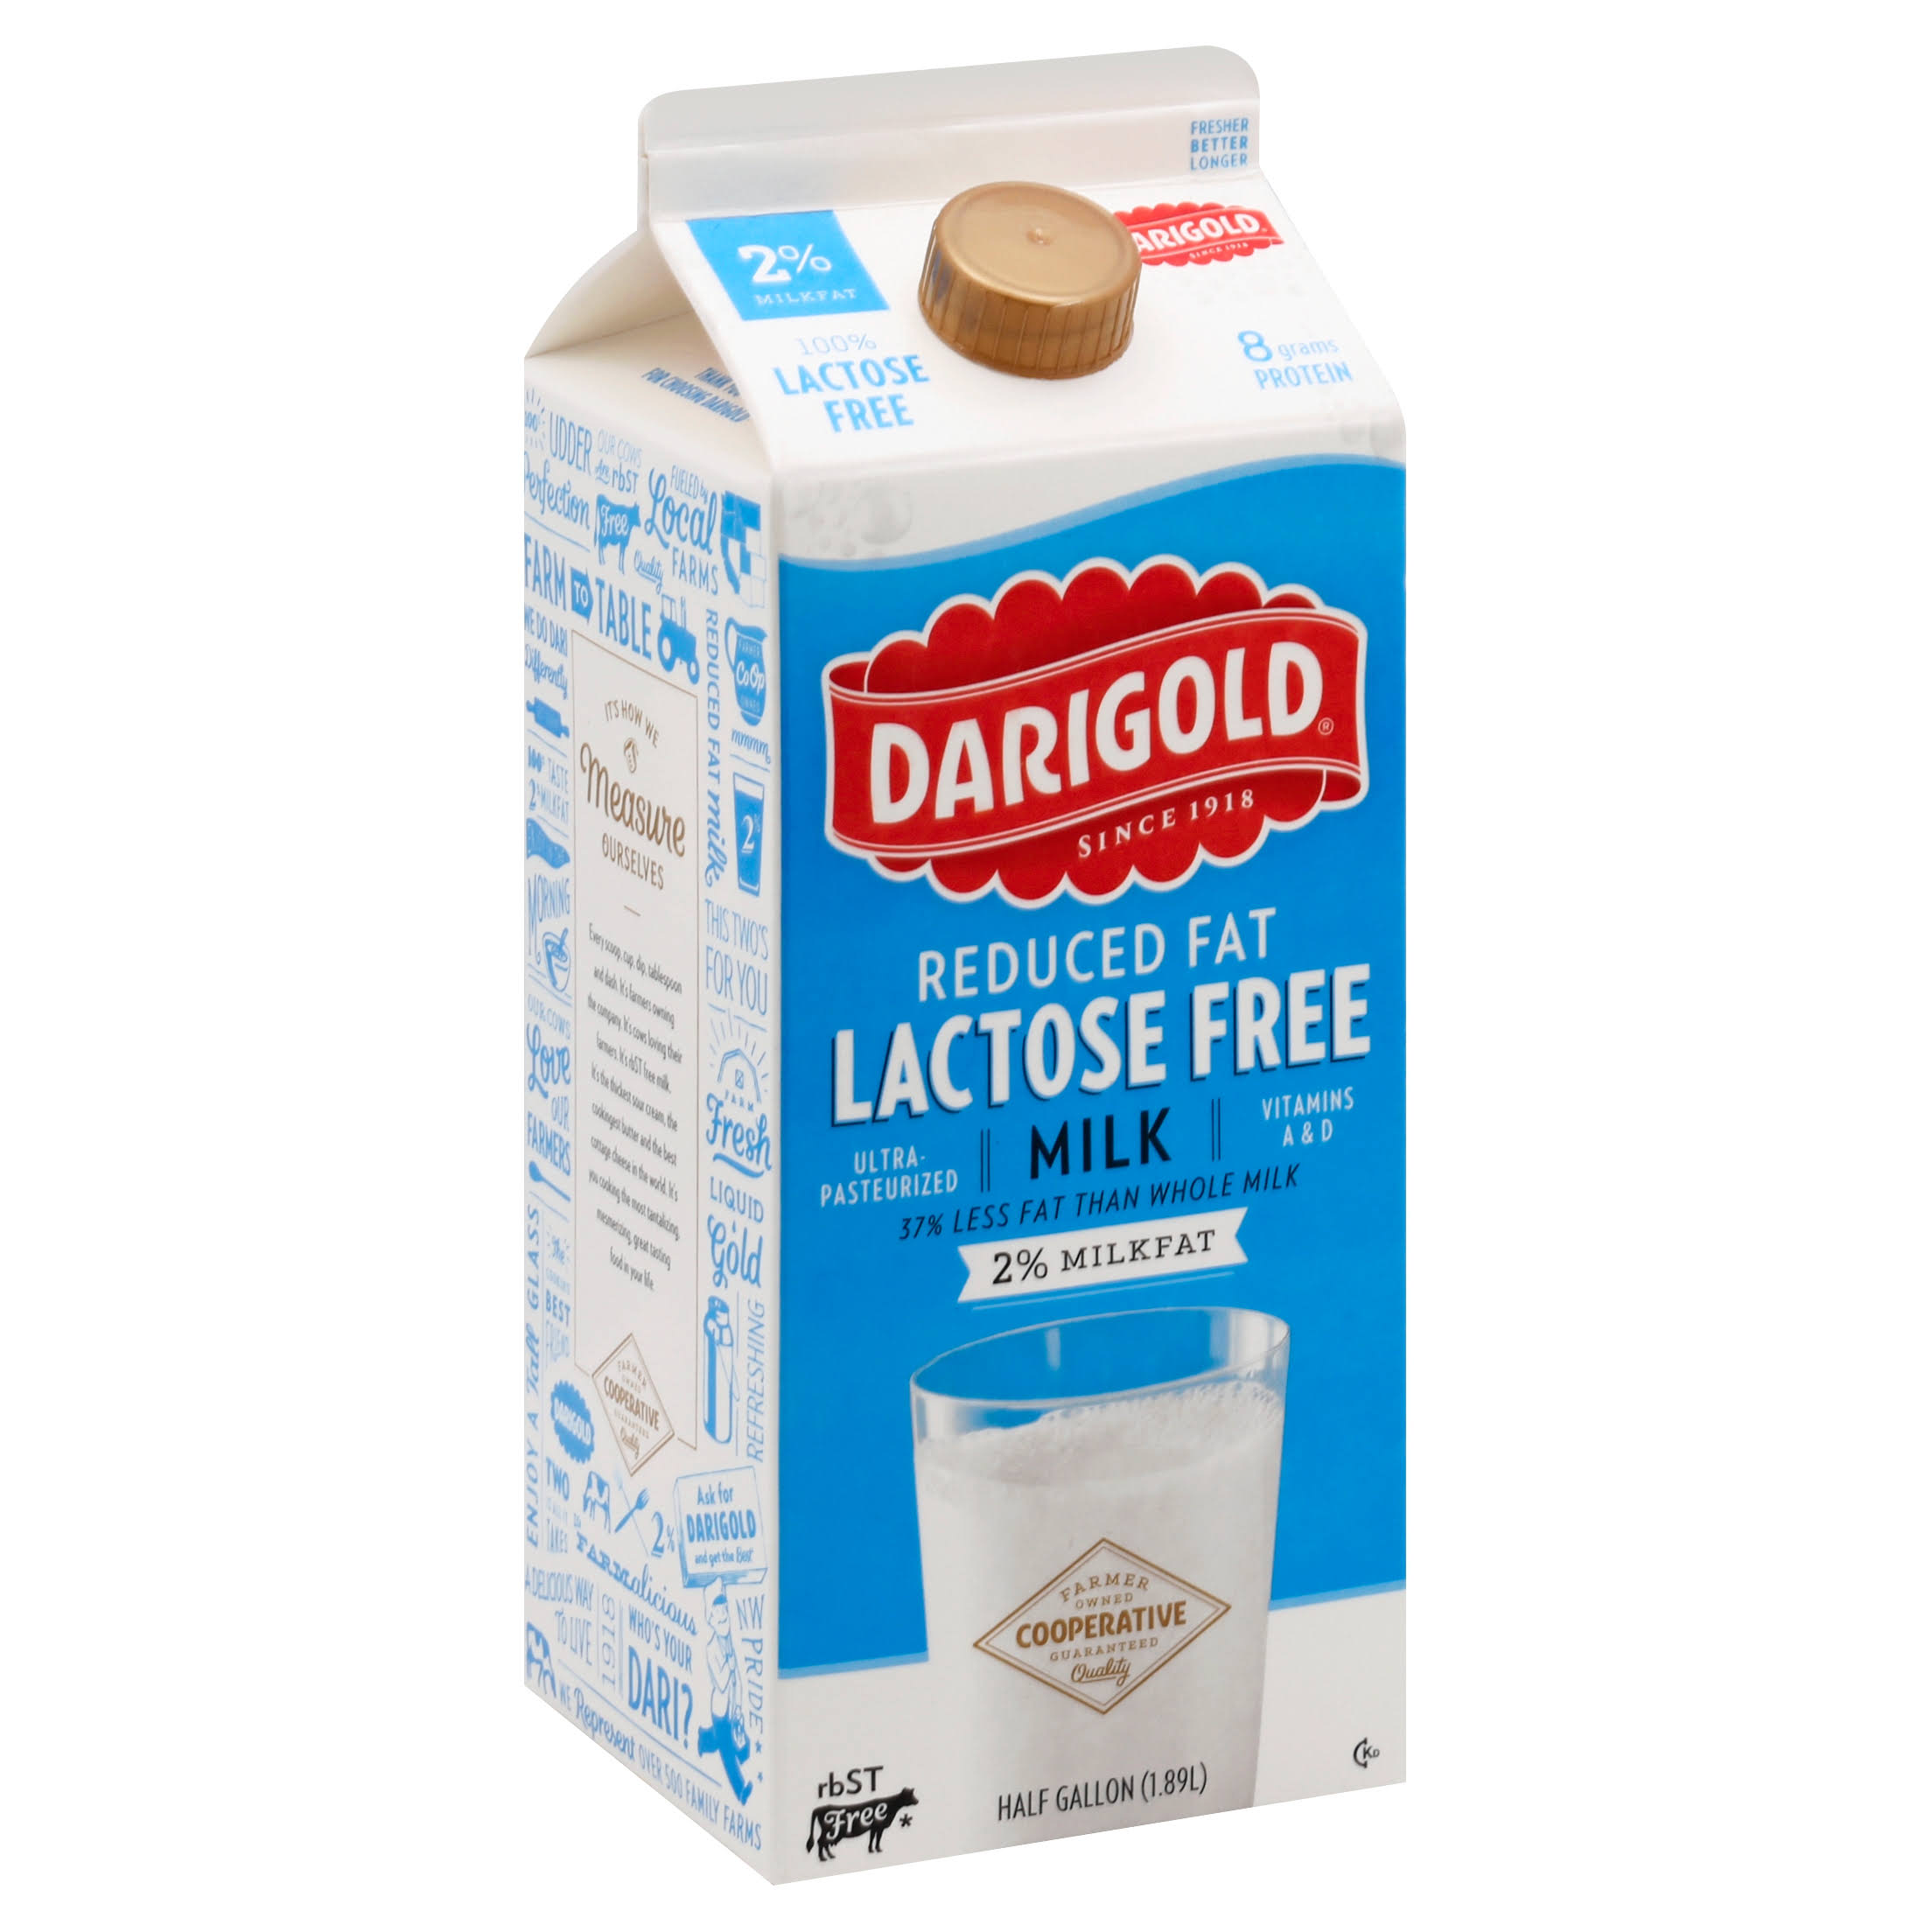 Darigold Milk, Lactose Free, Reduced Fat, 2% Milkfat - half gallon (1.89 l)